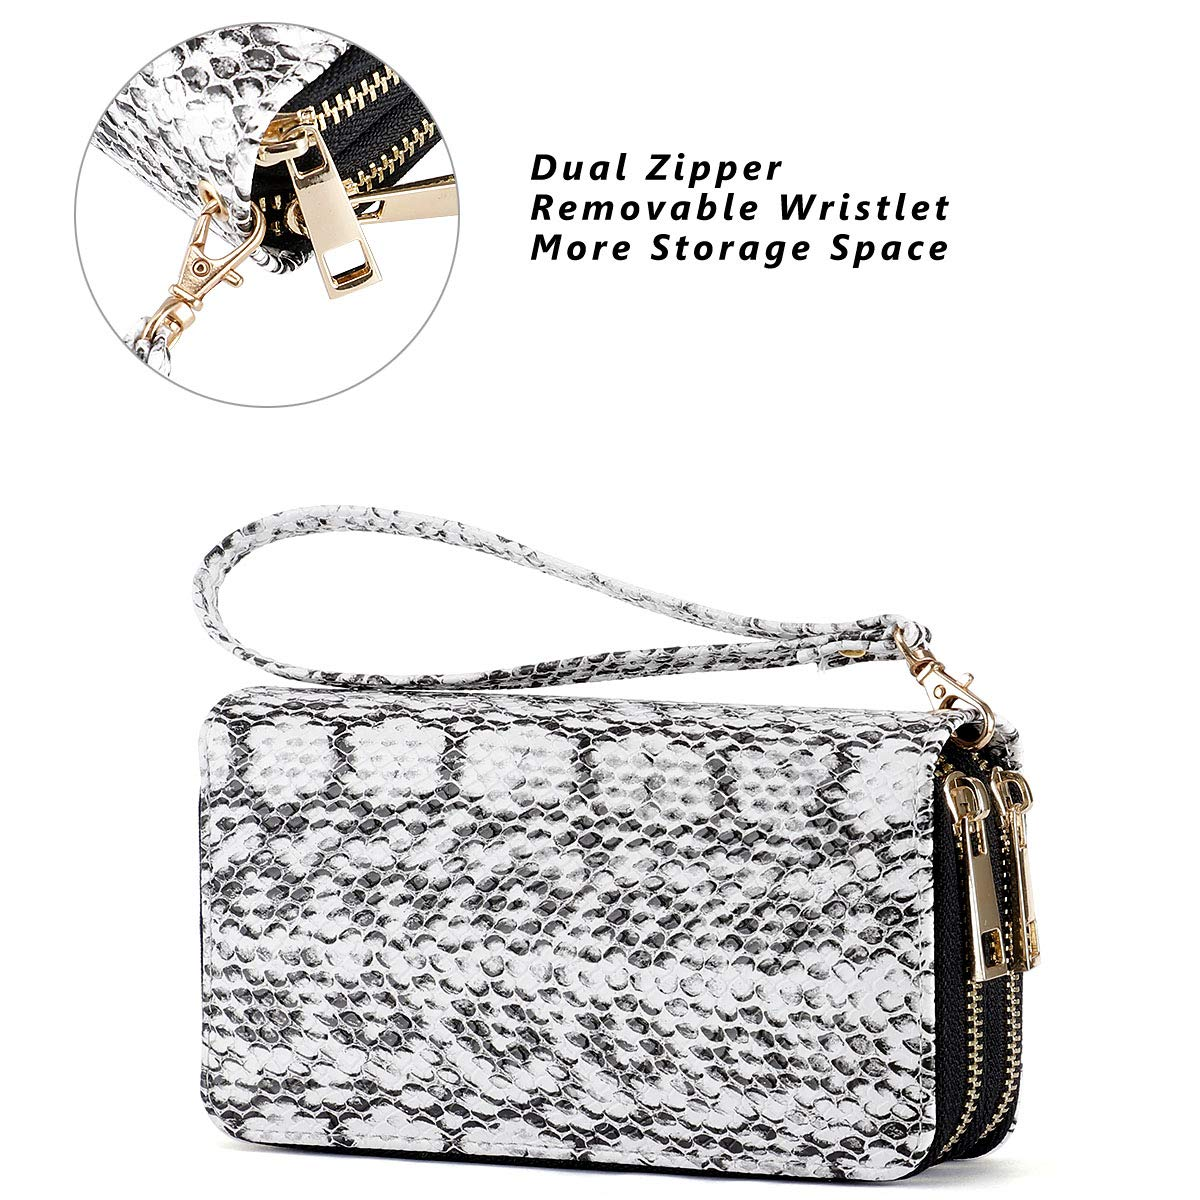 HAWEE Cellphone Wallet Dual Zipper Wristlet Purse with Credit Card Case/Coin Pouch/Smart Phone Pocket Soft Leather for Women or Lady, SnakeSkin White by HAWEE (Image #4)